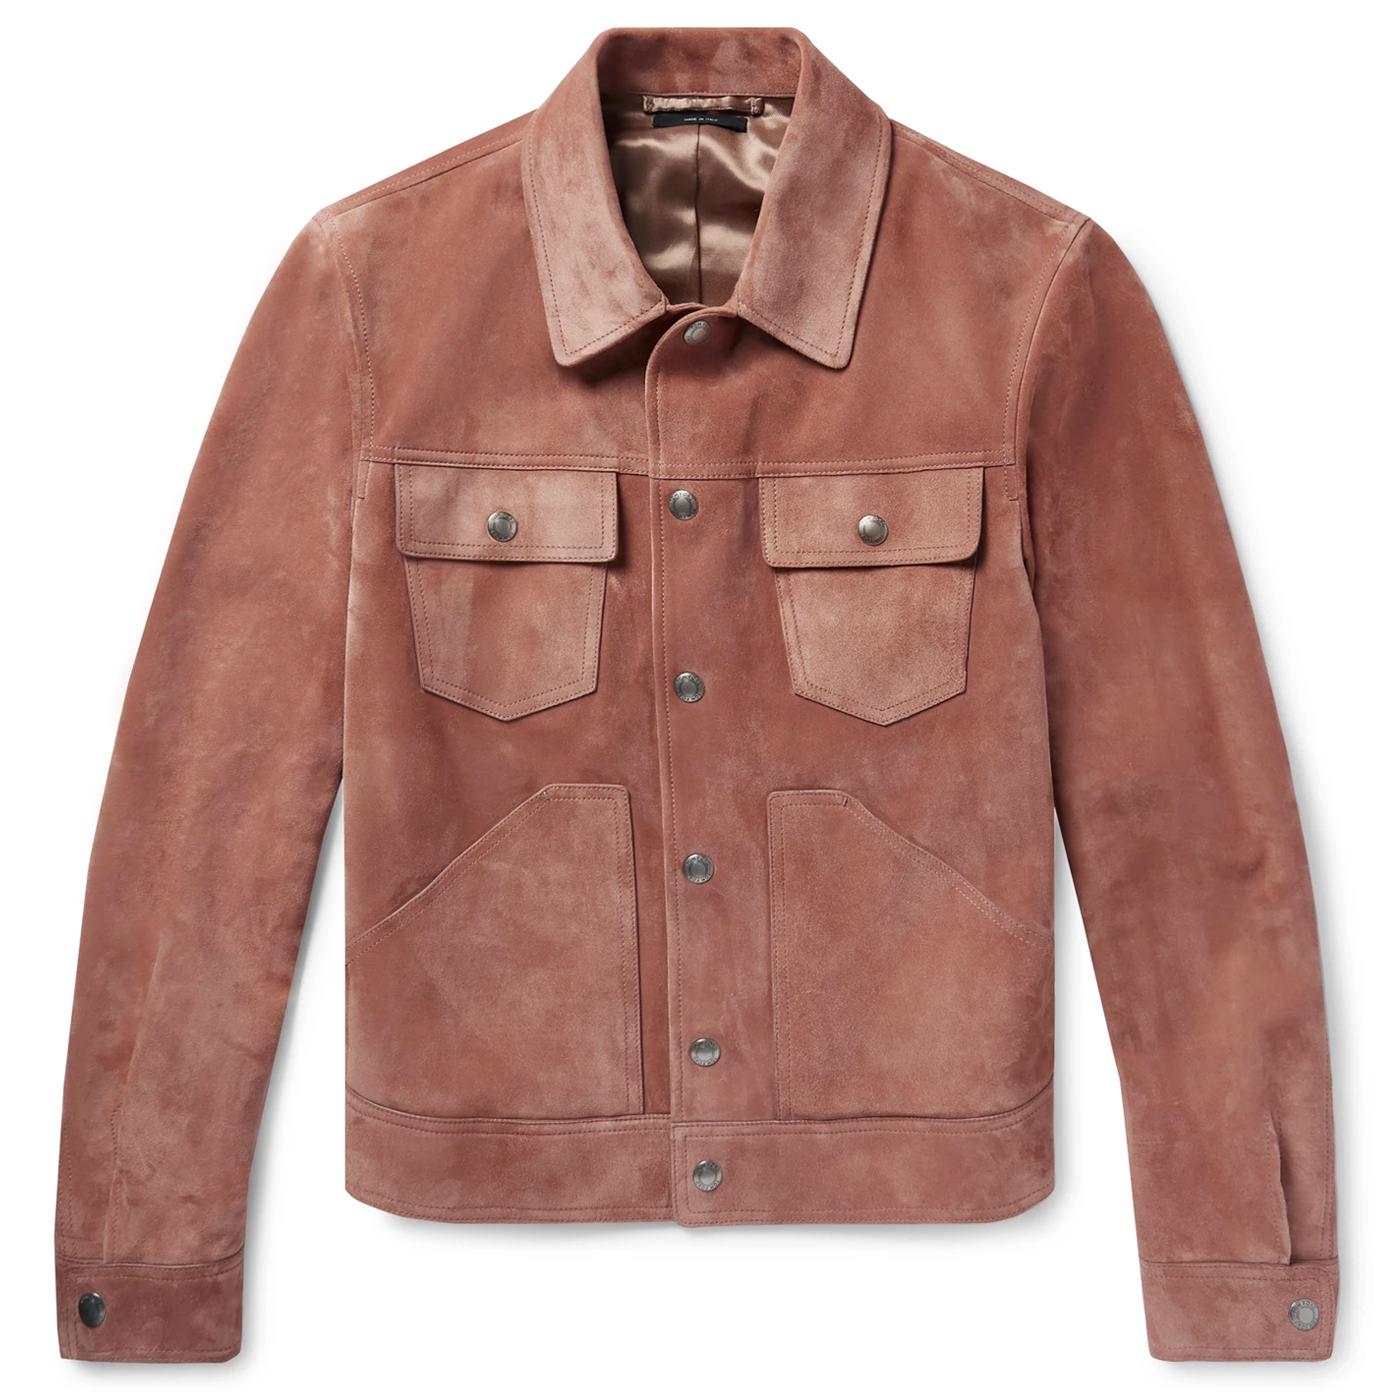 Style Mr Porter Veste Daim Tom Ford Rose